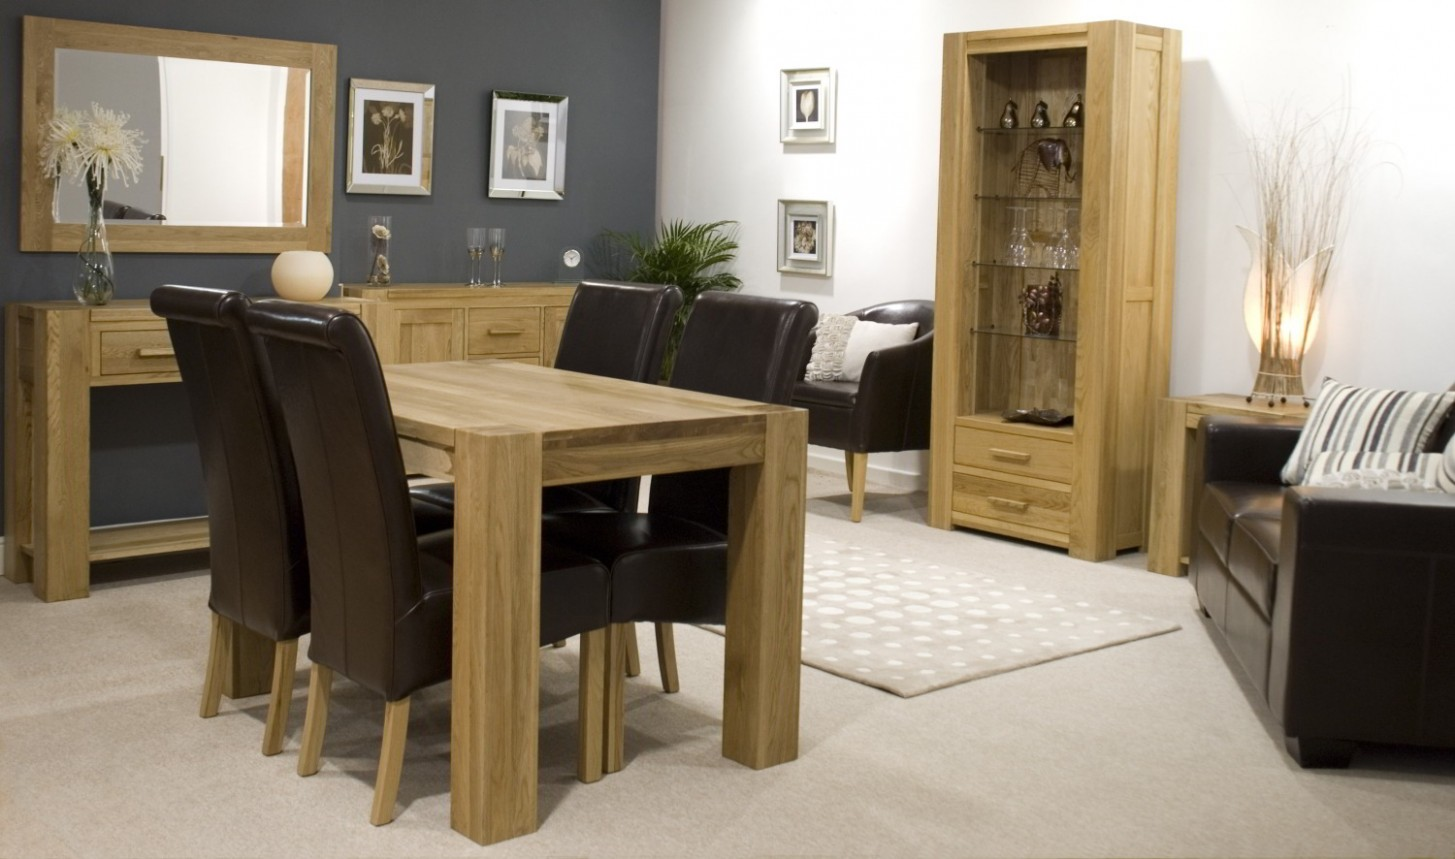 Living Room Oak Furniture Beautiful Dining Chairs Cottage Style  - Dining Room Ideas With Oak Furniture